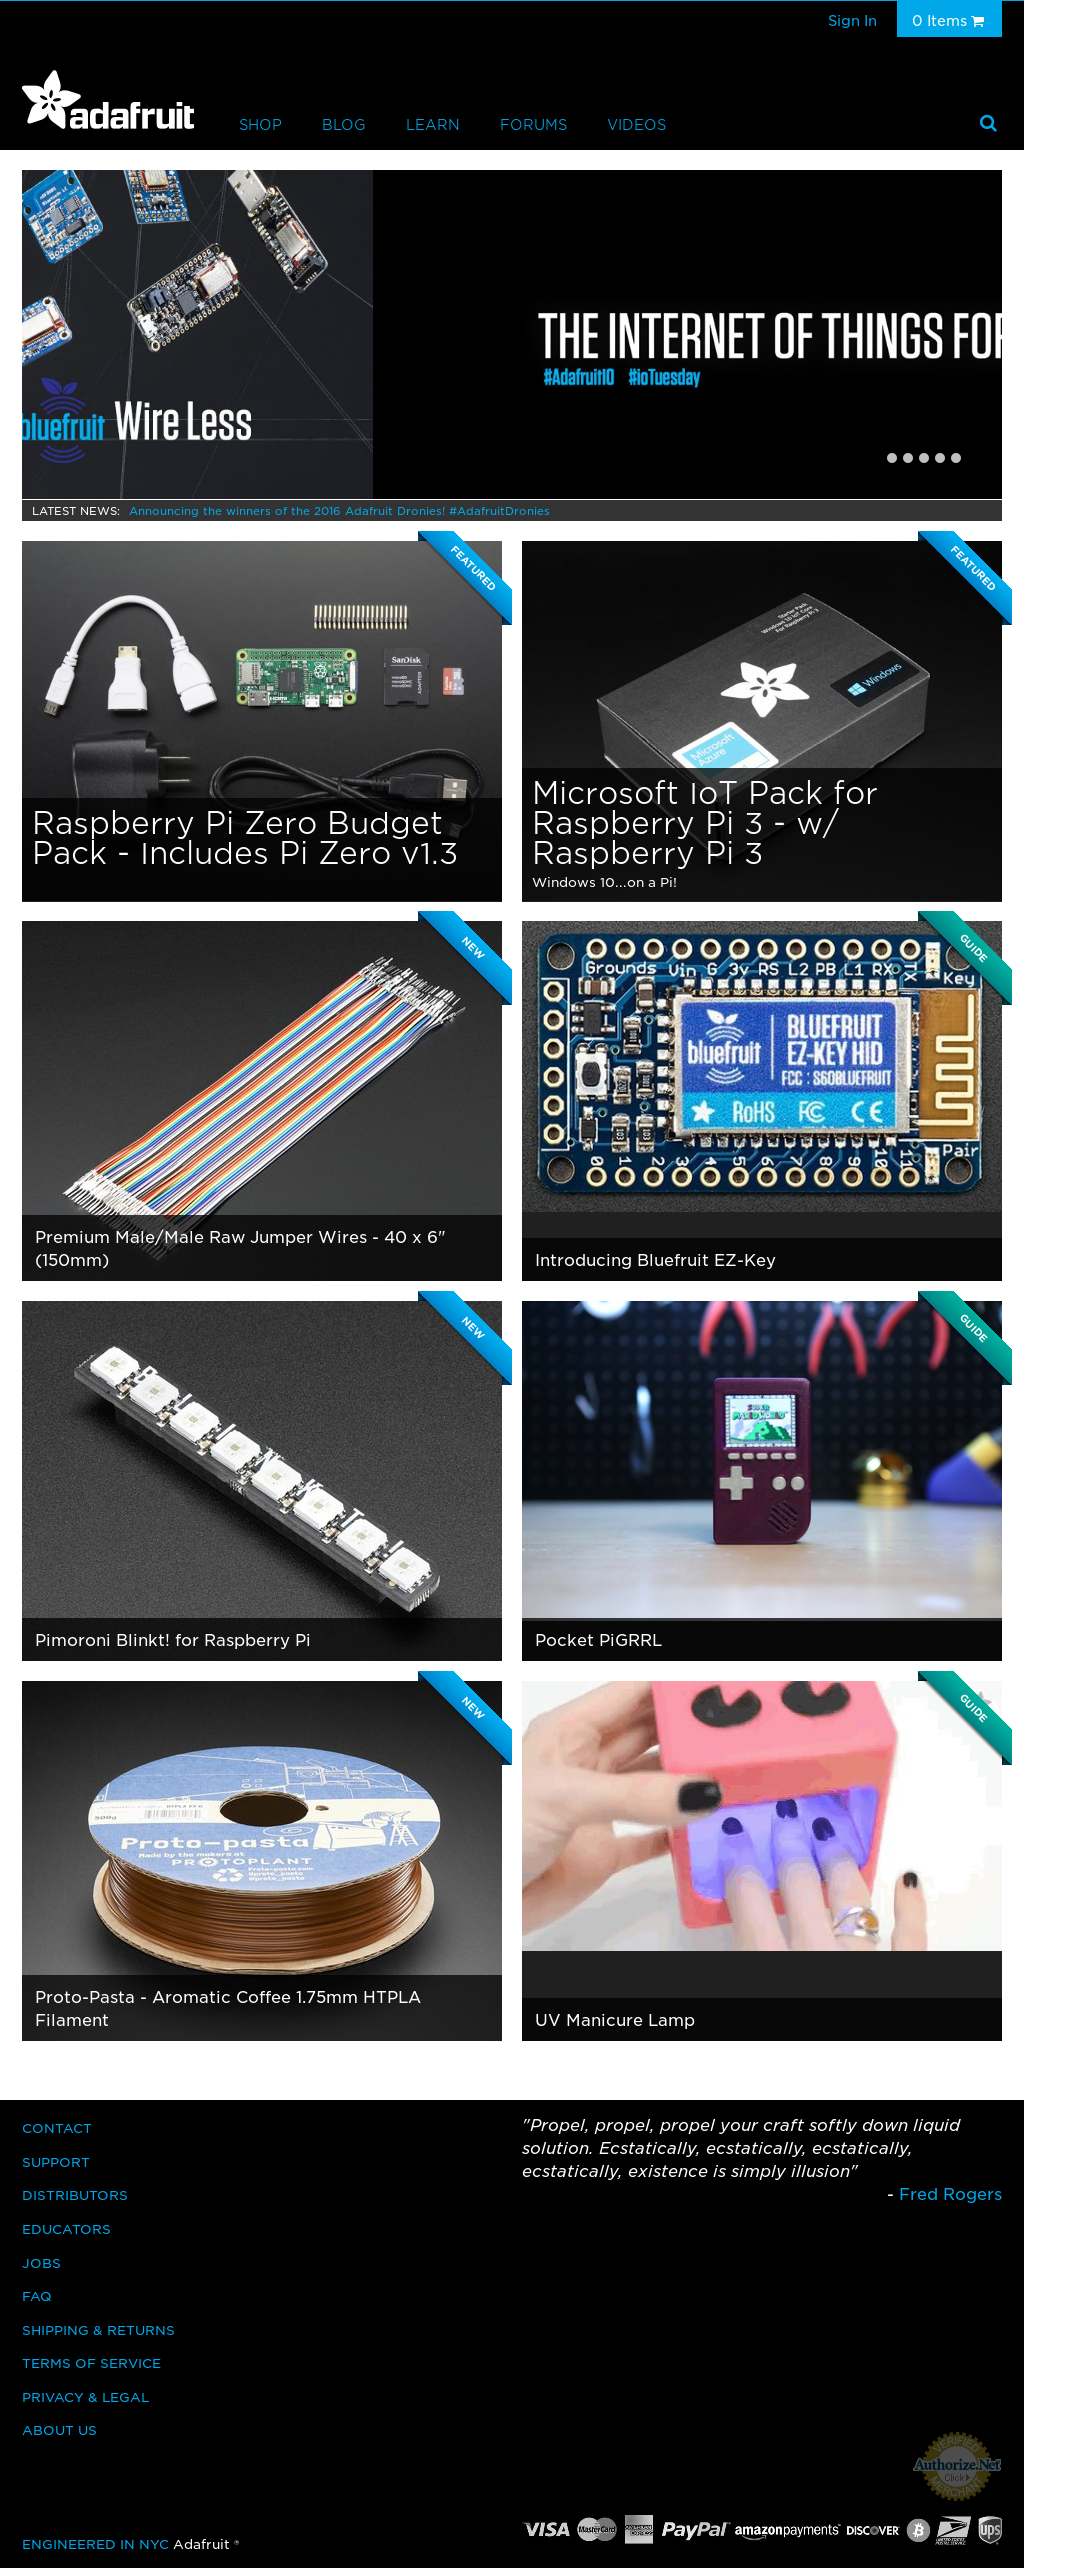 Adafruit Competitors, Revenue and Employees - Owler Company Profile